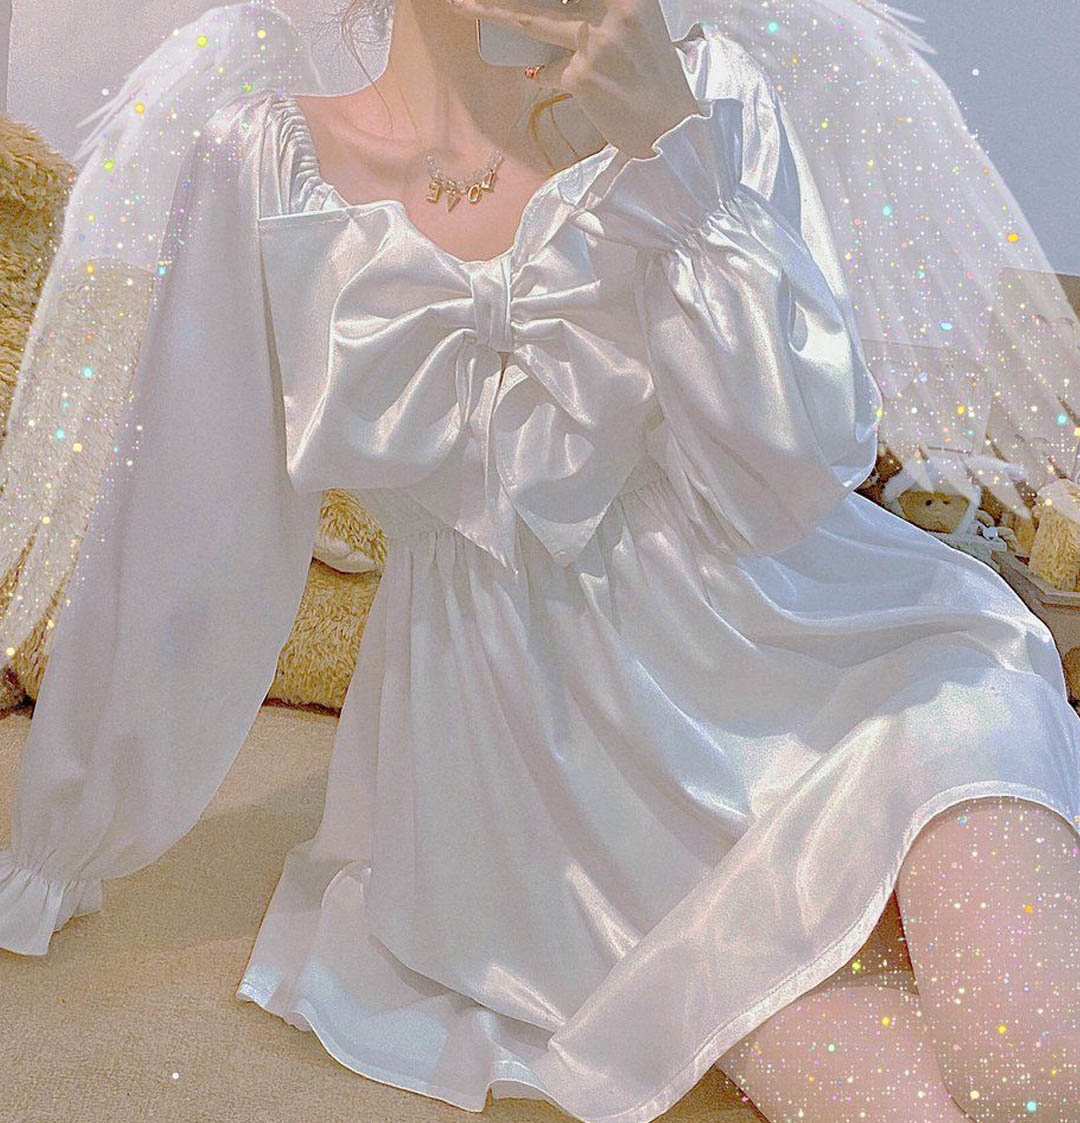 AngelCore – the aesthetics of Angels, tenderness and unearthly beauty.